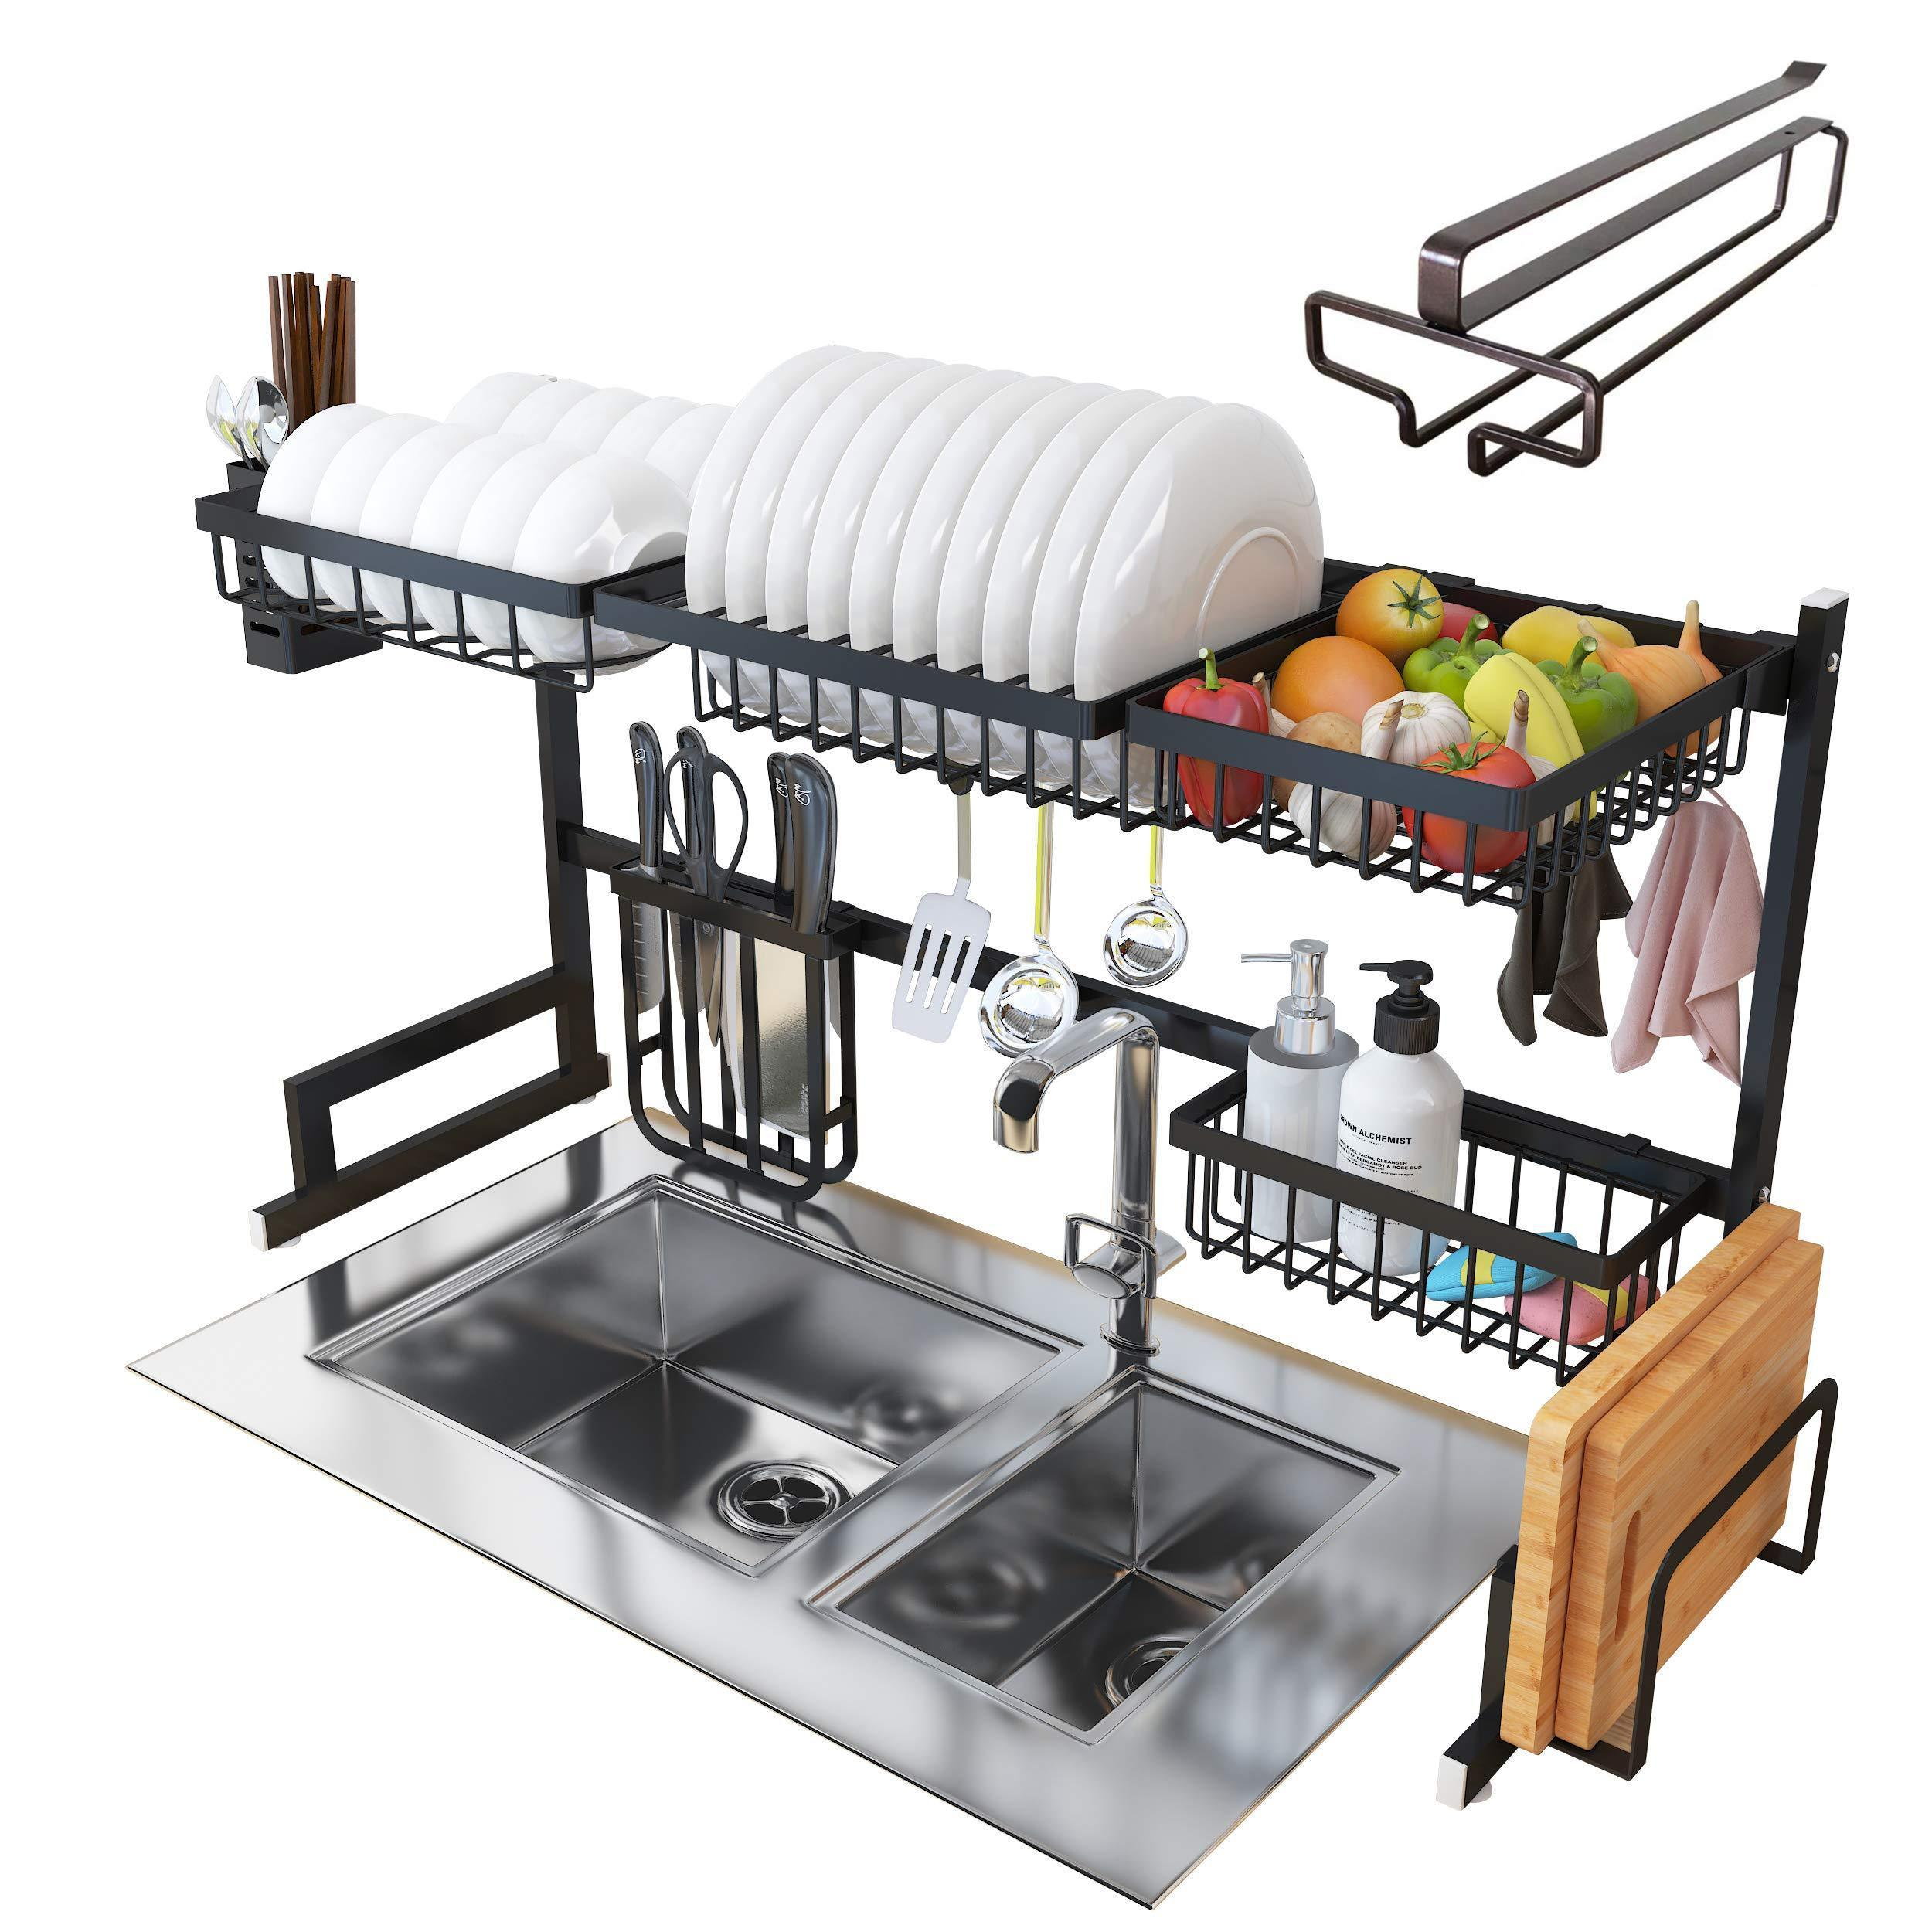 Over Sink Dish Drying Rack - Kitchen Organizer and Dish Drainer with 7 Interchangeable Racks and Caddies - Plus Bonus Wine Glass Rack That Mounts to Cabinetry